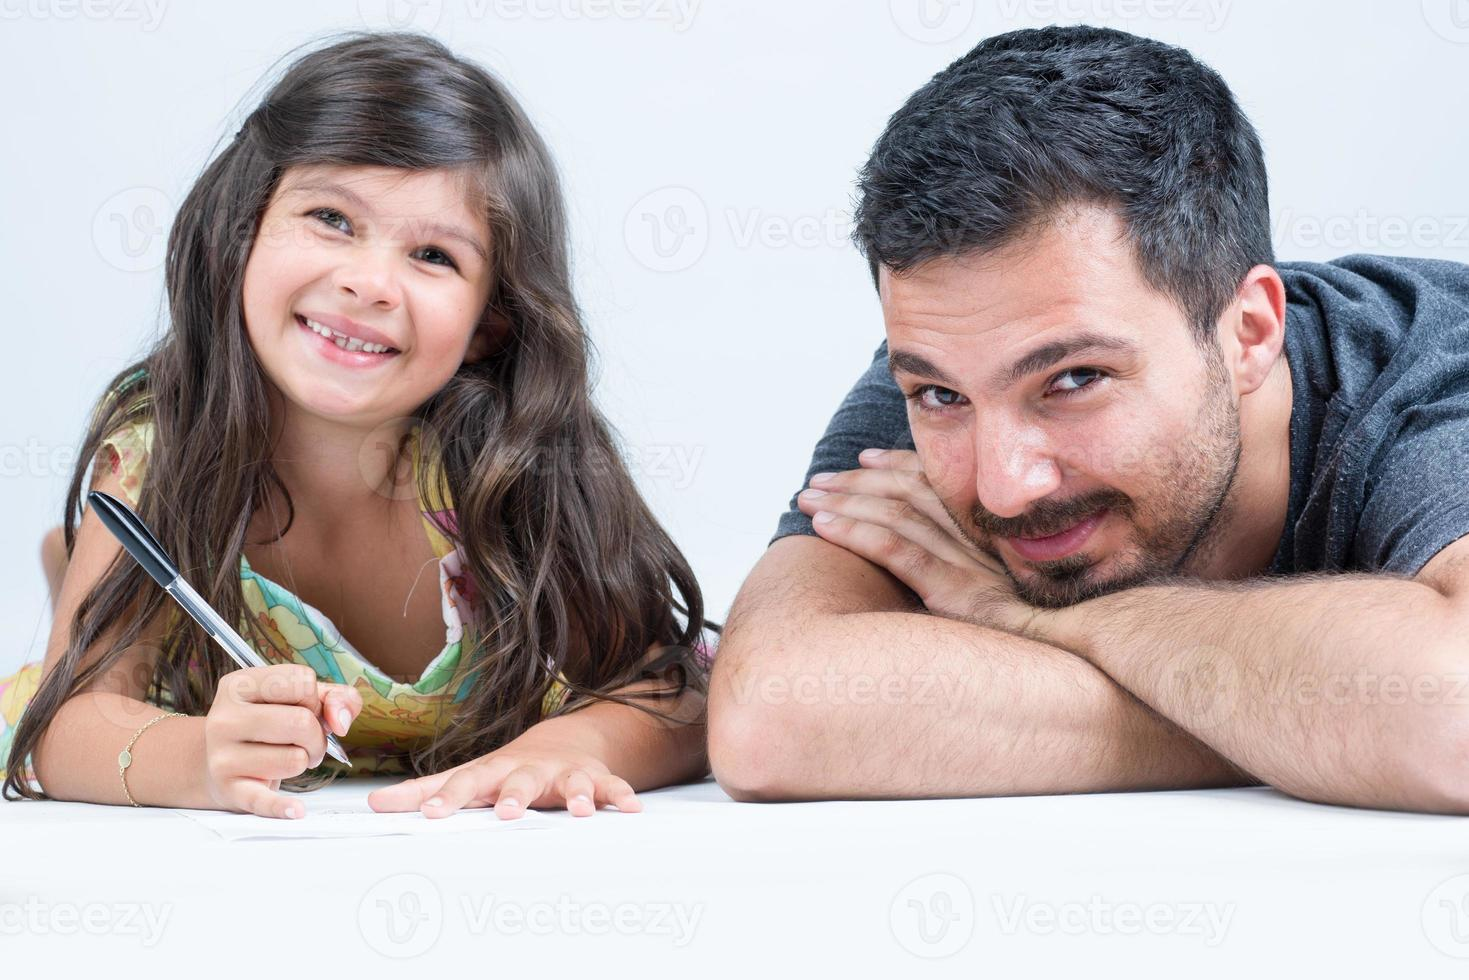 Daughter and dad having fun together photo